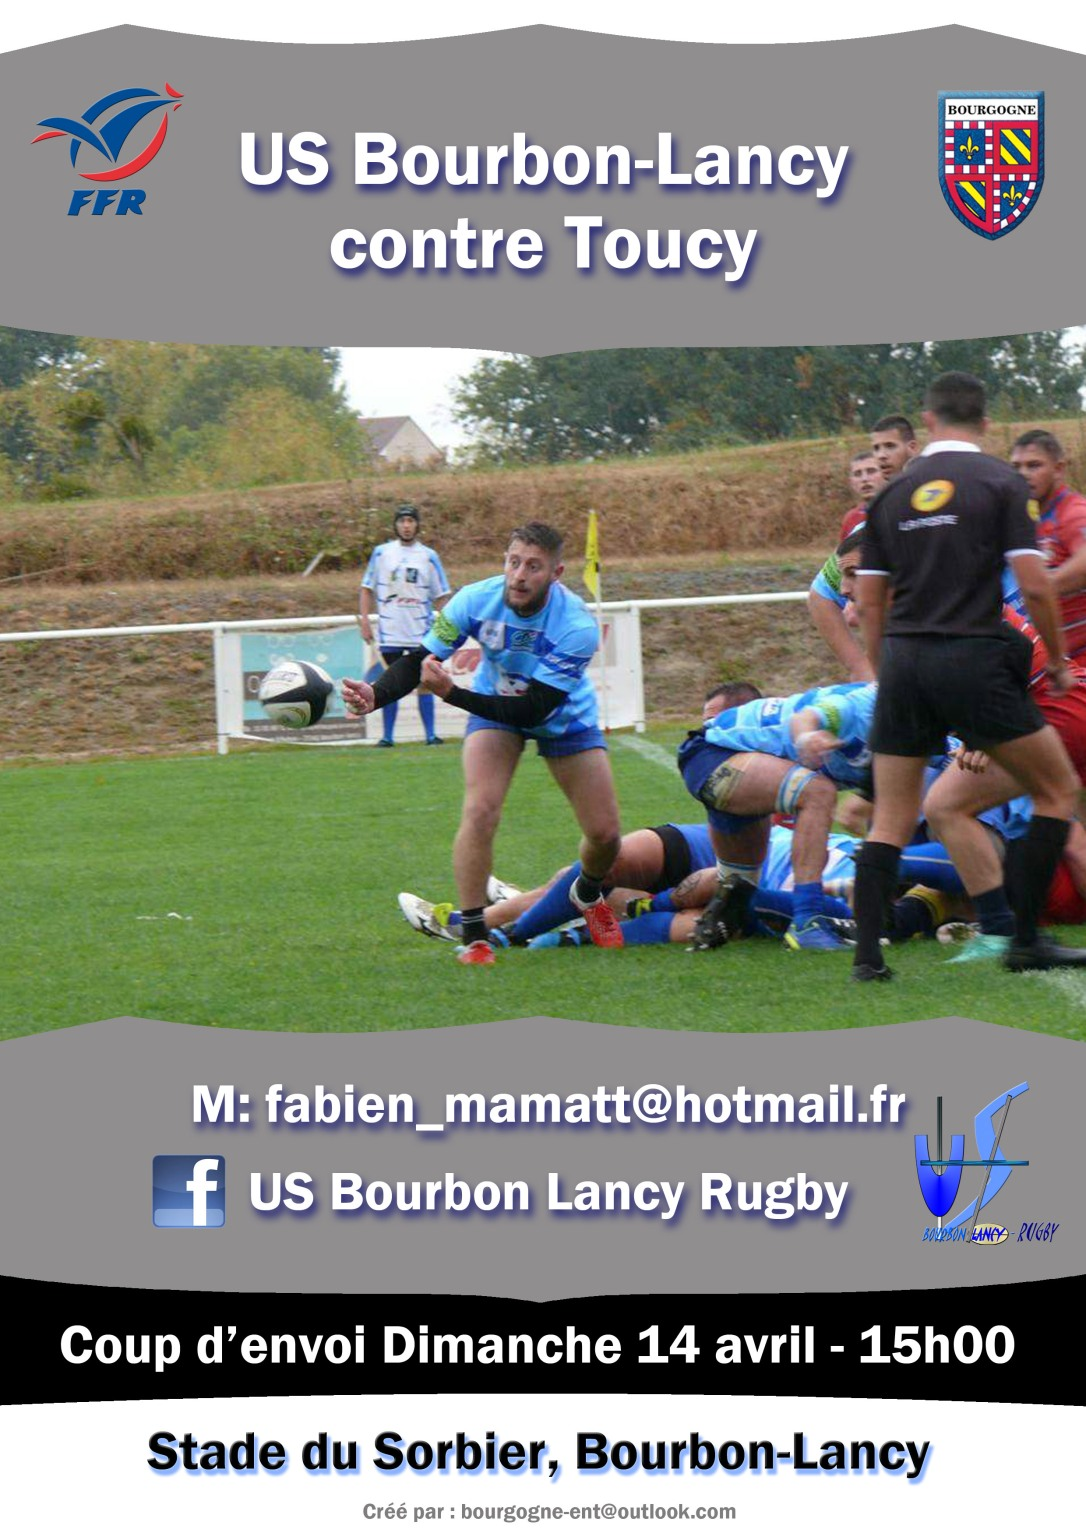 Rugby Bourbon-Lancy contre Toucy 14 avril 2019